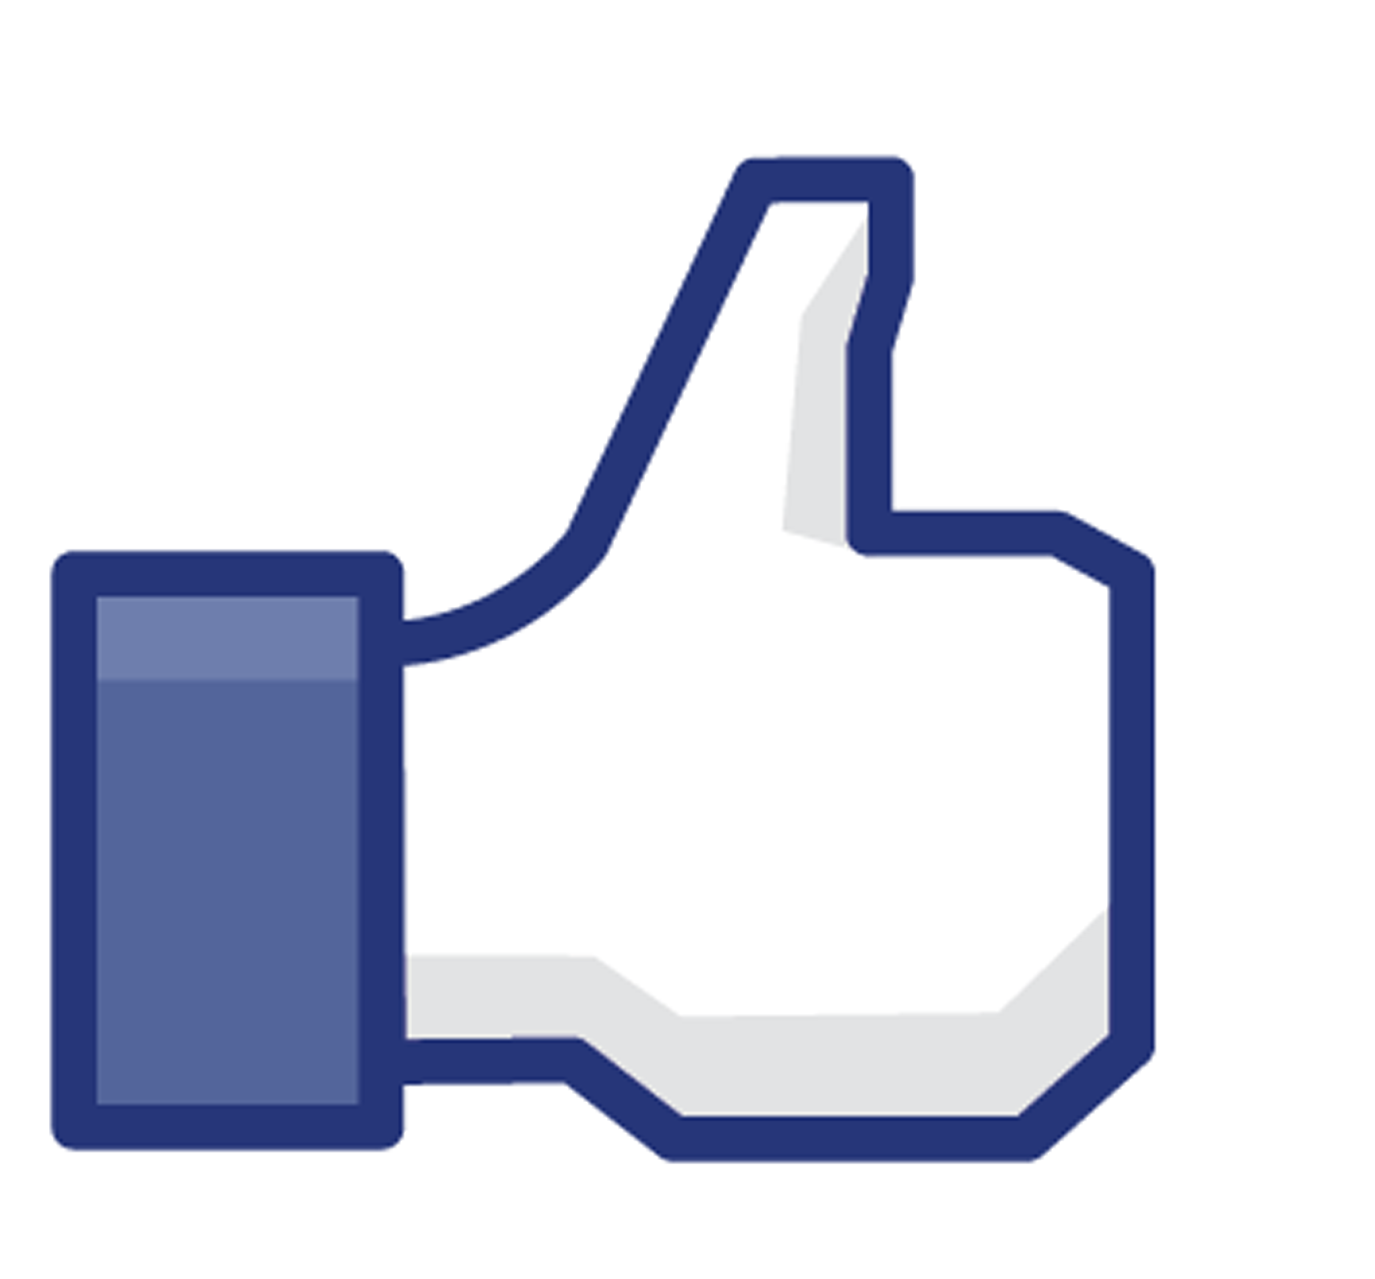 facebook sued for patent infringement over like button and